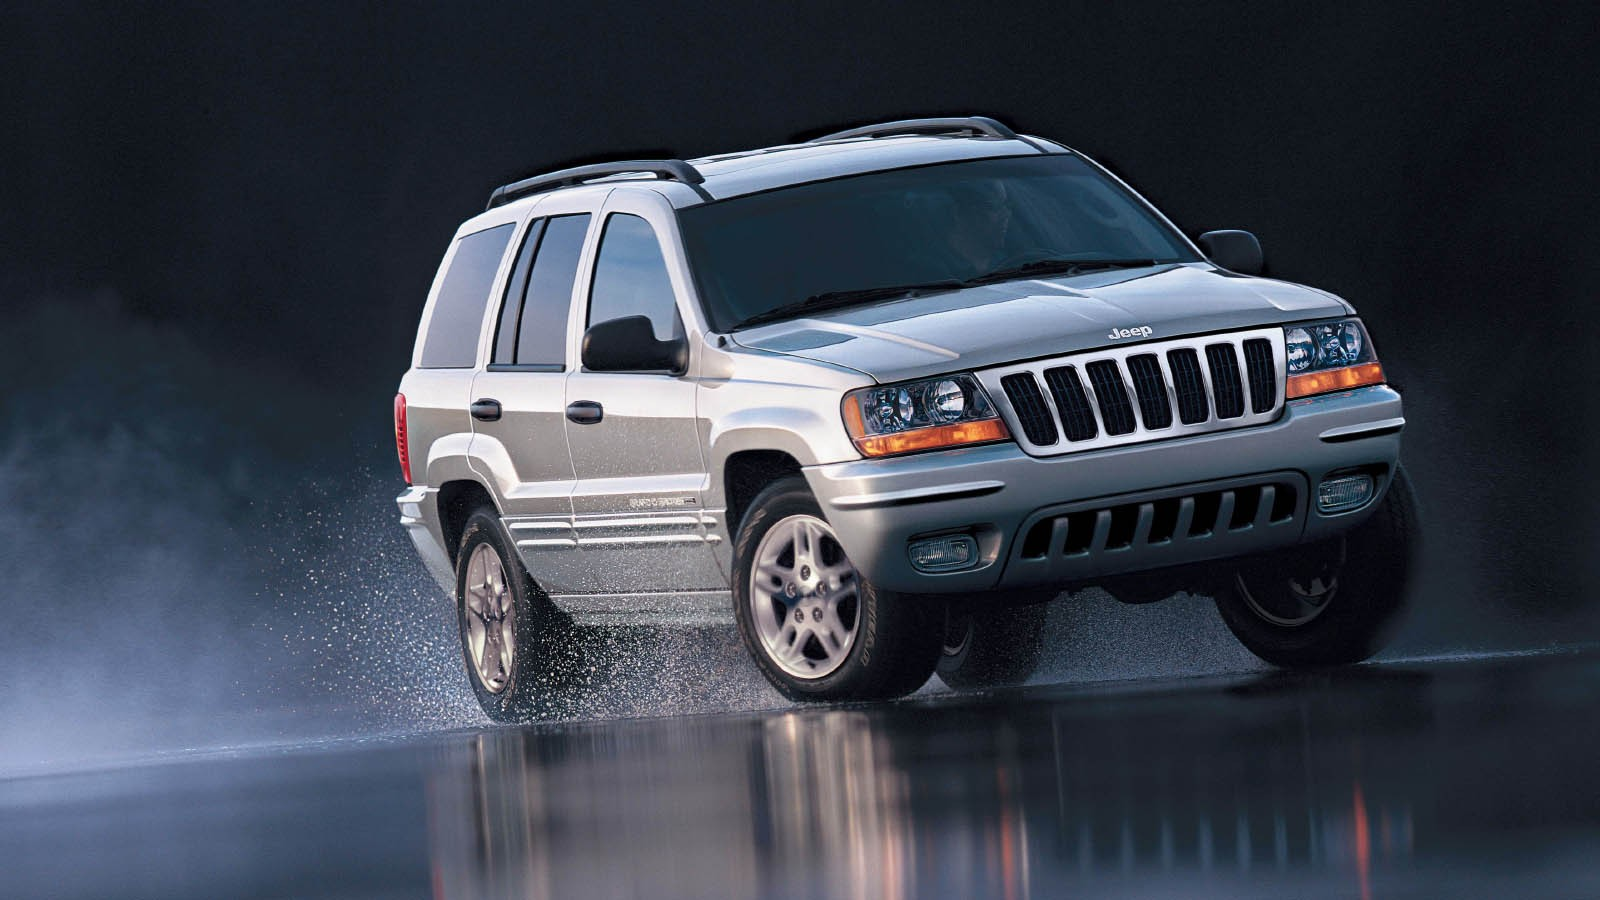 2002 Jeep® Grand Cherokee Special Edition. (March, 2002).